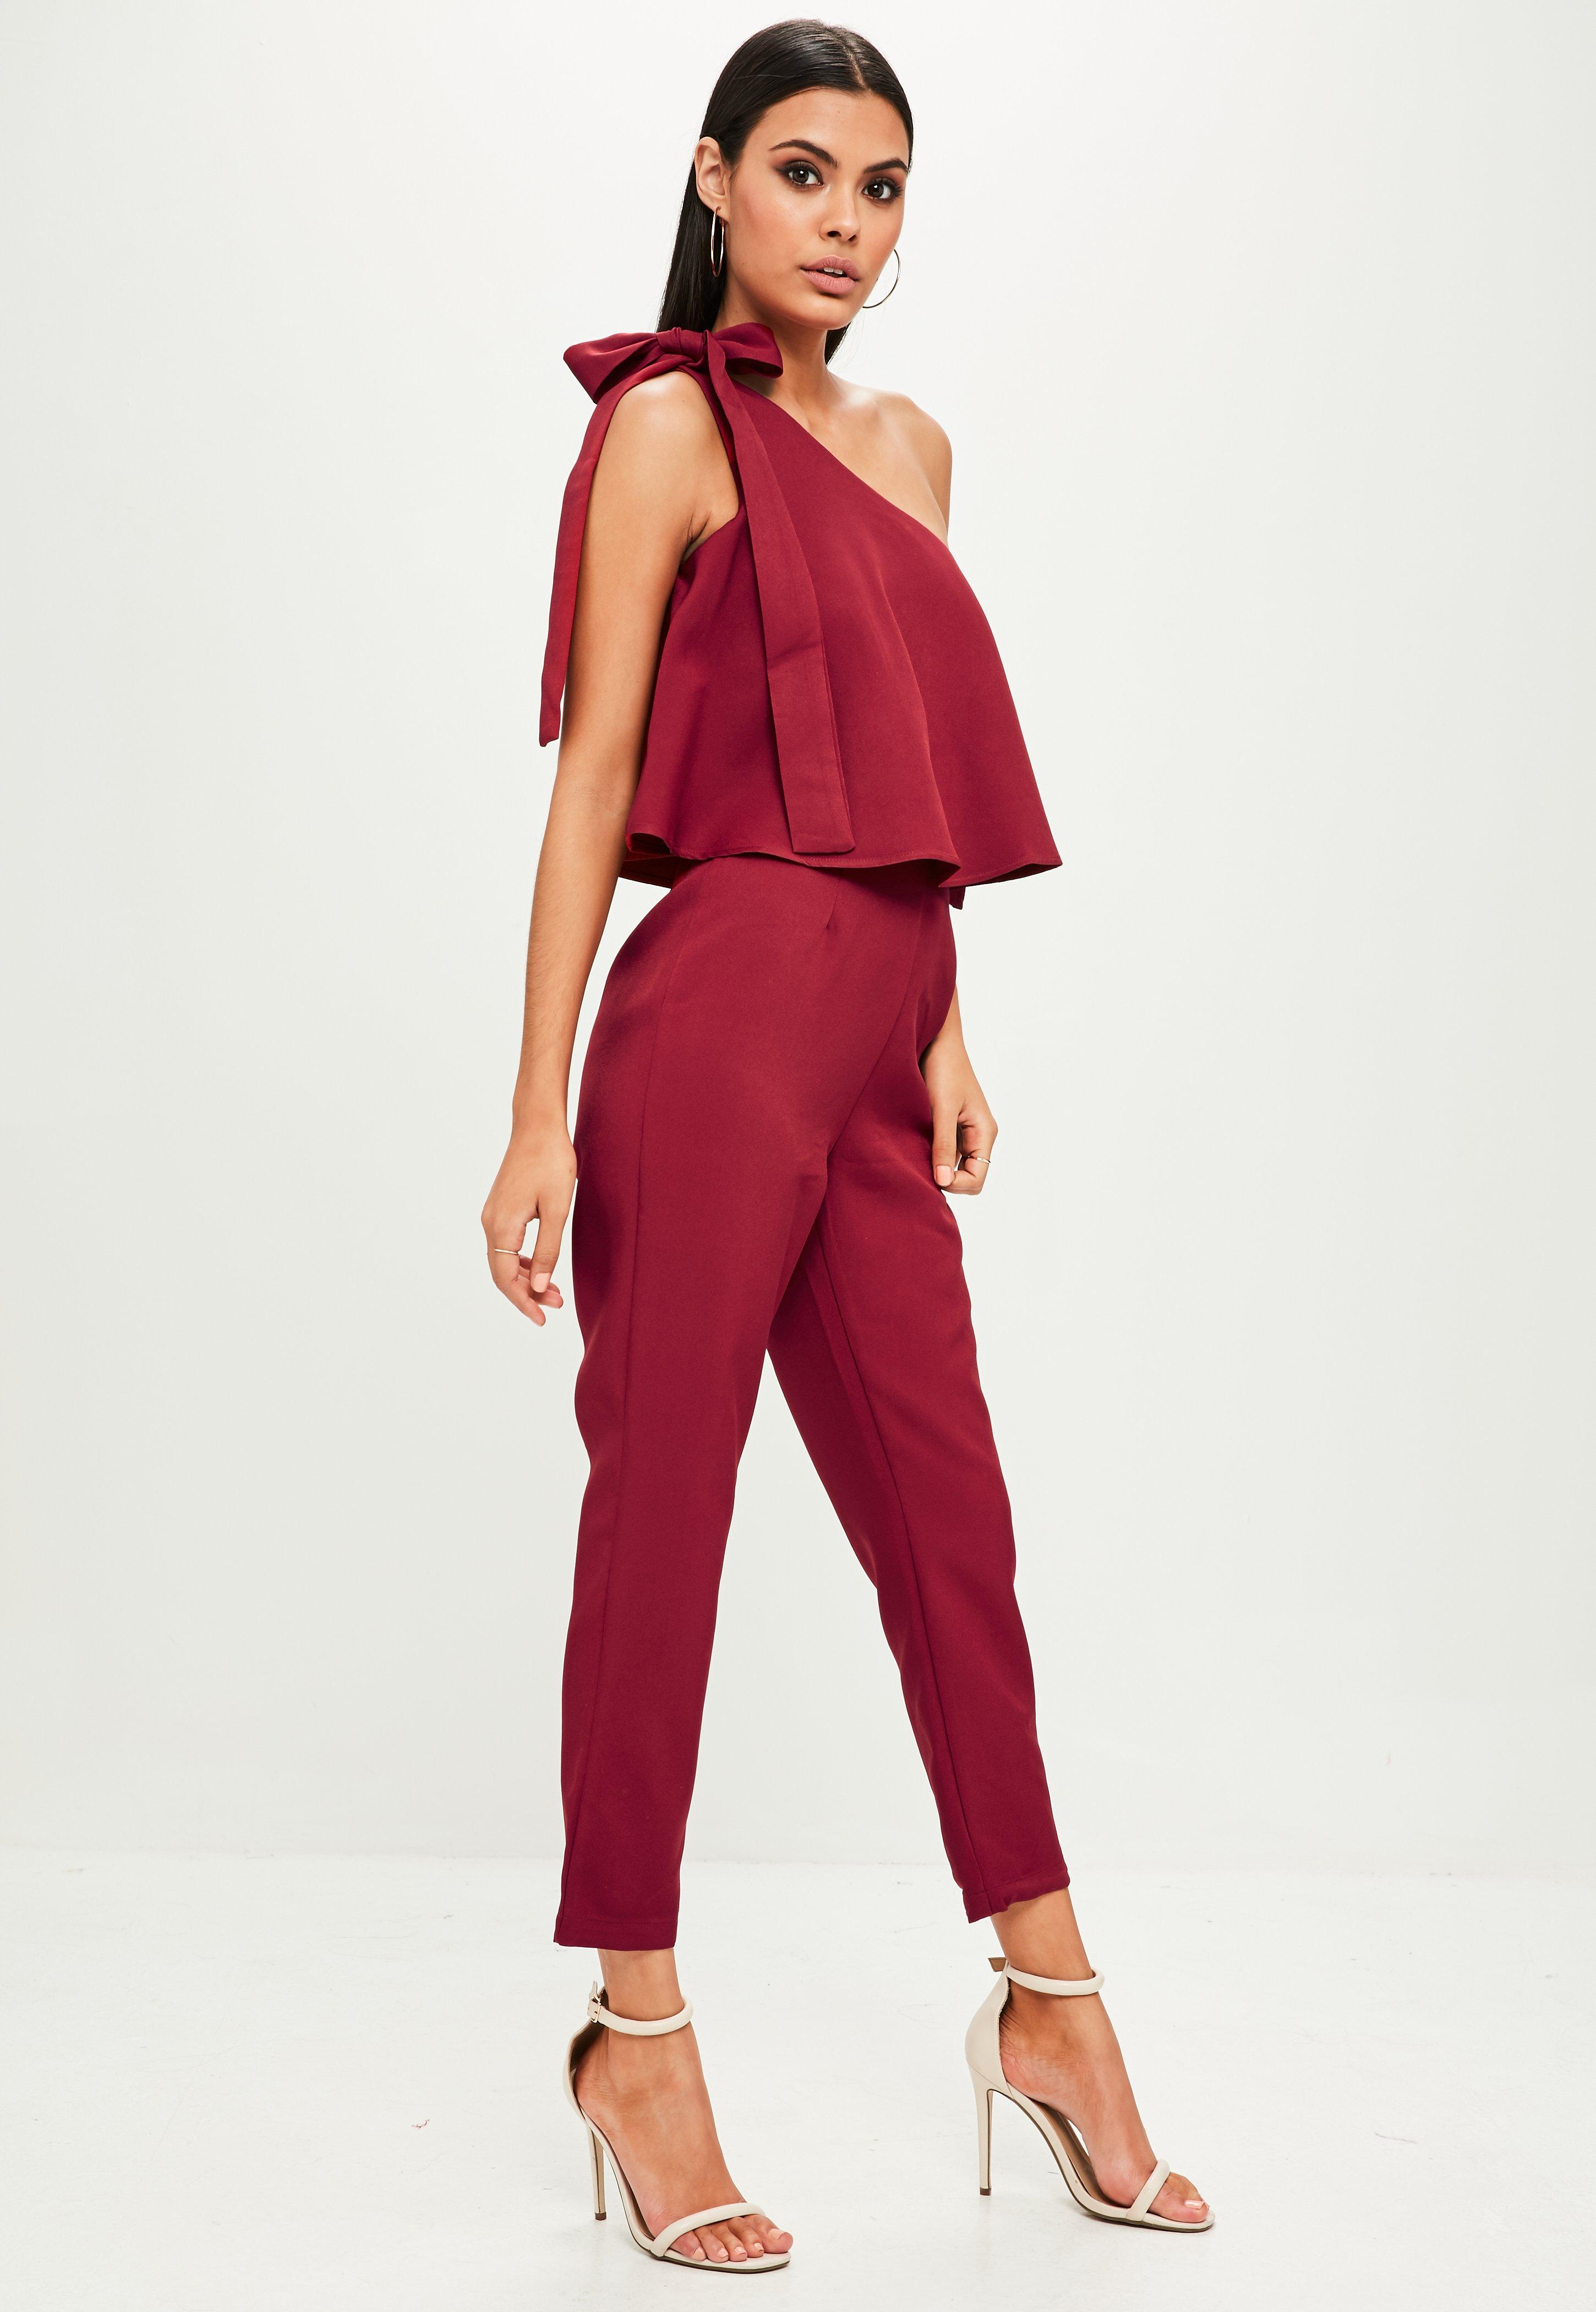 35e0b4fc42 Missguided Red One Shoulder Bardot Jumpsuit in Red - Lyst